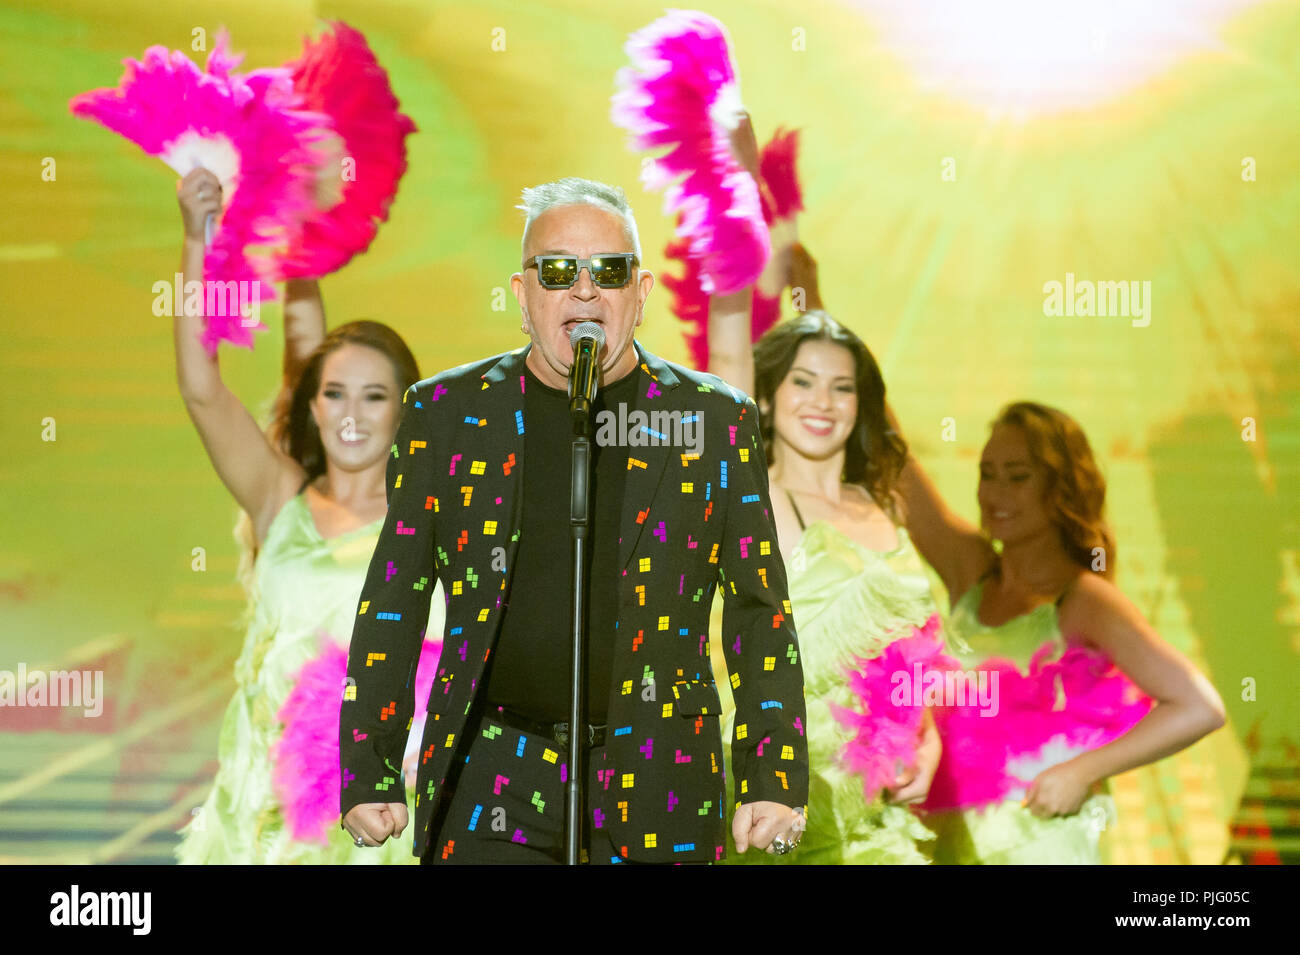 Johnson Righeira during a concert in Gdansk, Poland. August 31st 2018  © Wojciech Strozyk / Alamy Stock Photo *** Local Caption *** - Stock Image